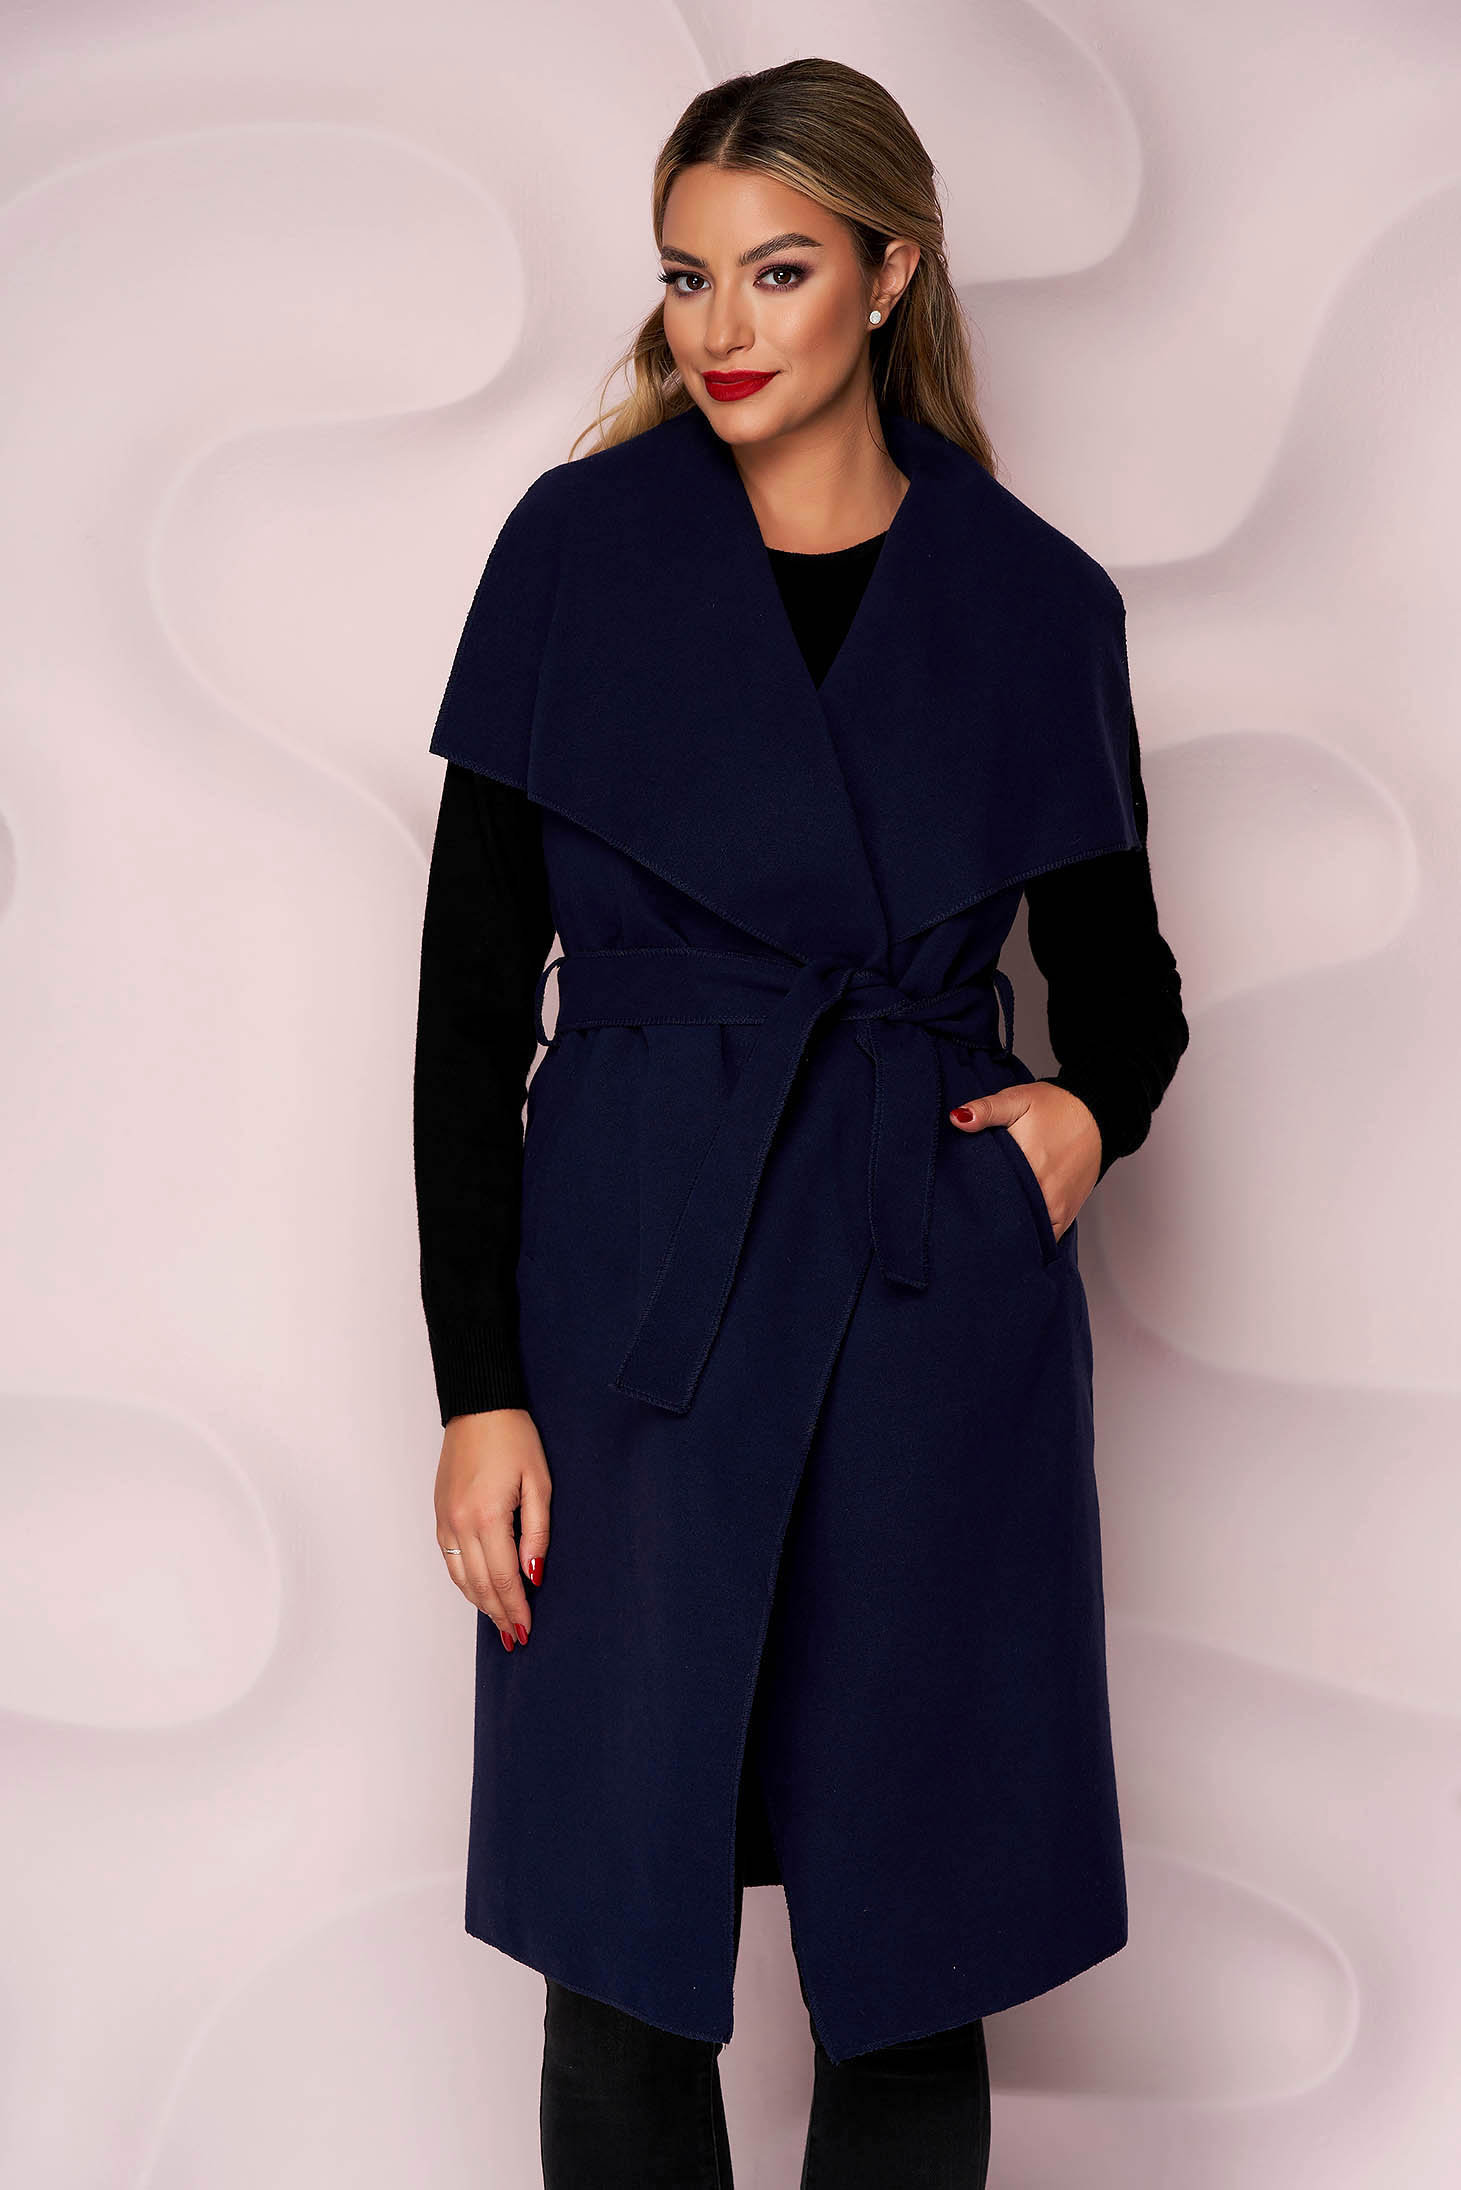 Darkblue gilet thick fabric casual with pockets detachable cord soft fabric